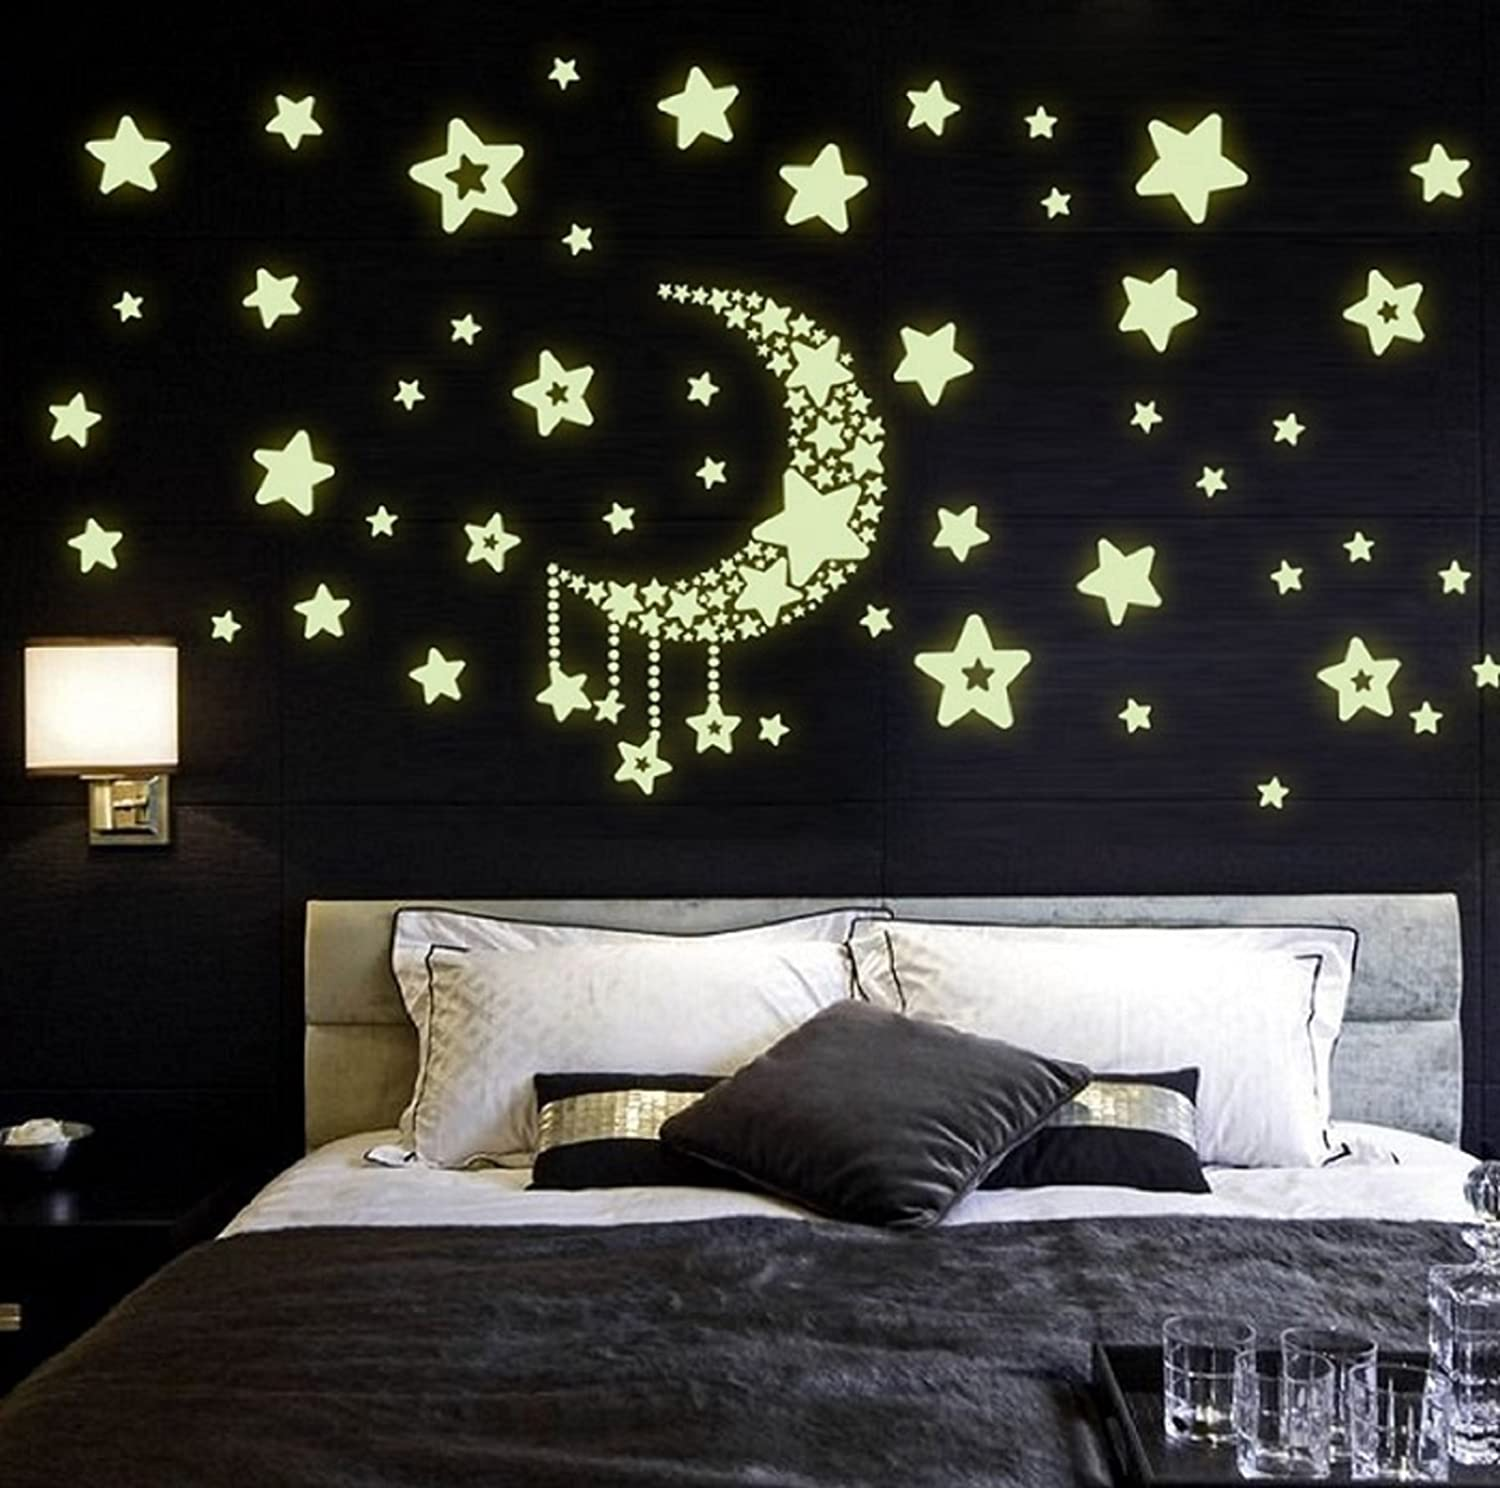 Exceptional Buy Jaamso Royals U0027Moon And Stars Glow In The Darku0027 Wall Sticker (Vinyl, 32  Cm X 24 Cm X 0.5 Cm) Online At Low Prices In India   Amazon.in Part 12